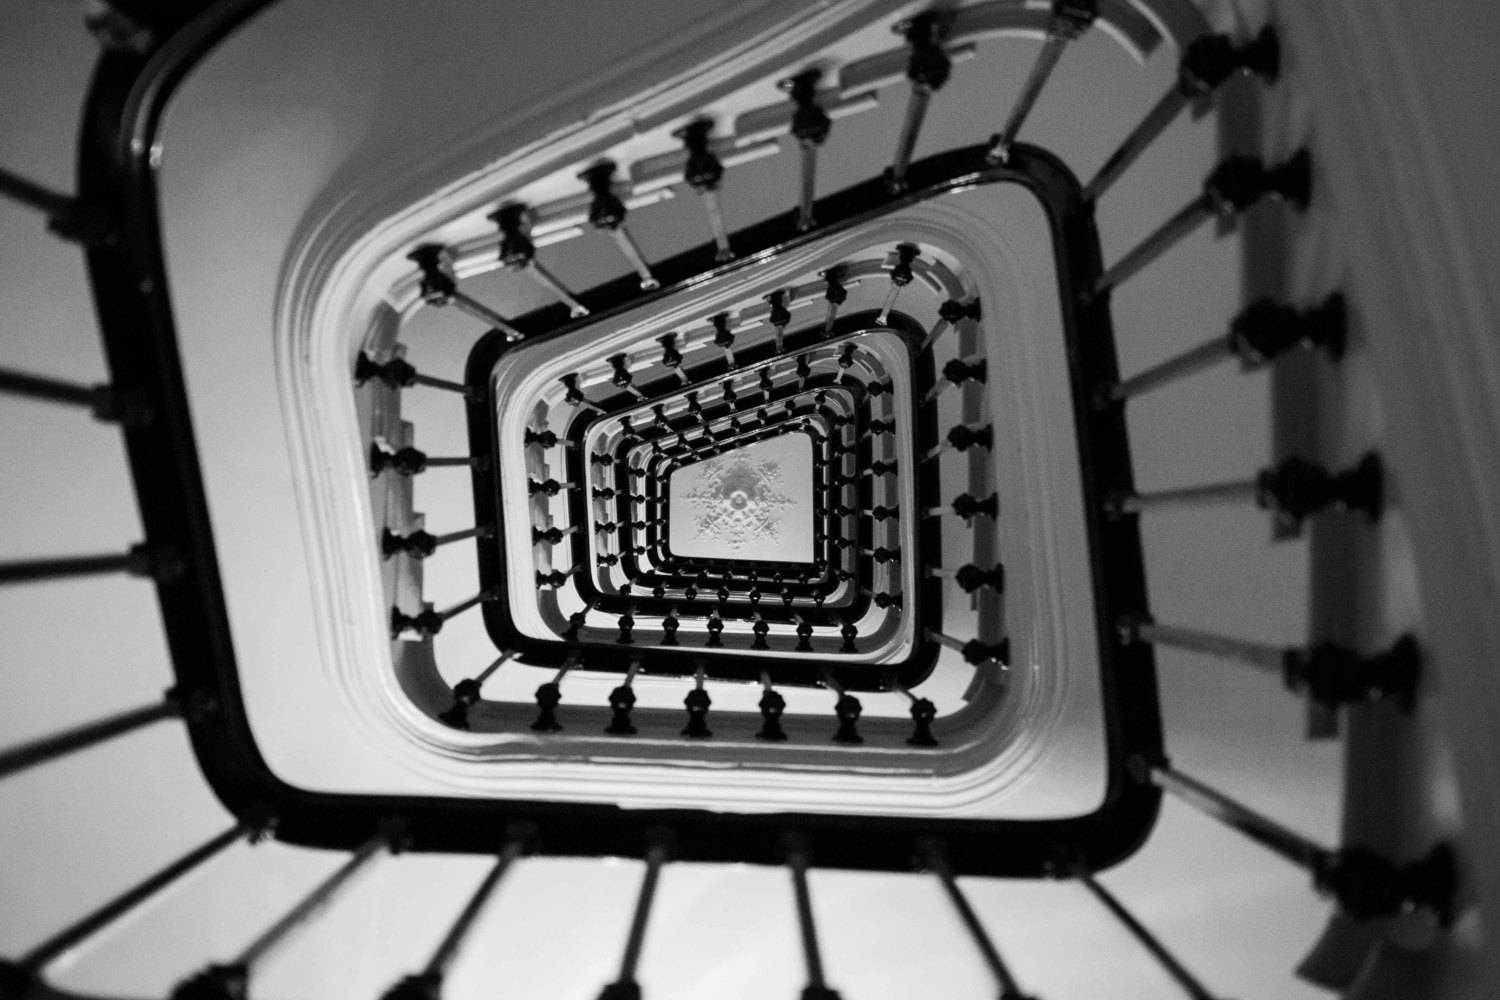 Black & White Photos: Paris Photography – Taking The Stairs In Regarding Most Up To Date Black And White Paris Wall Art (View 4 of 25)